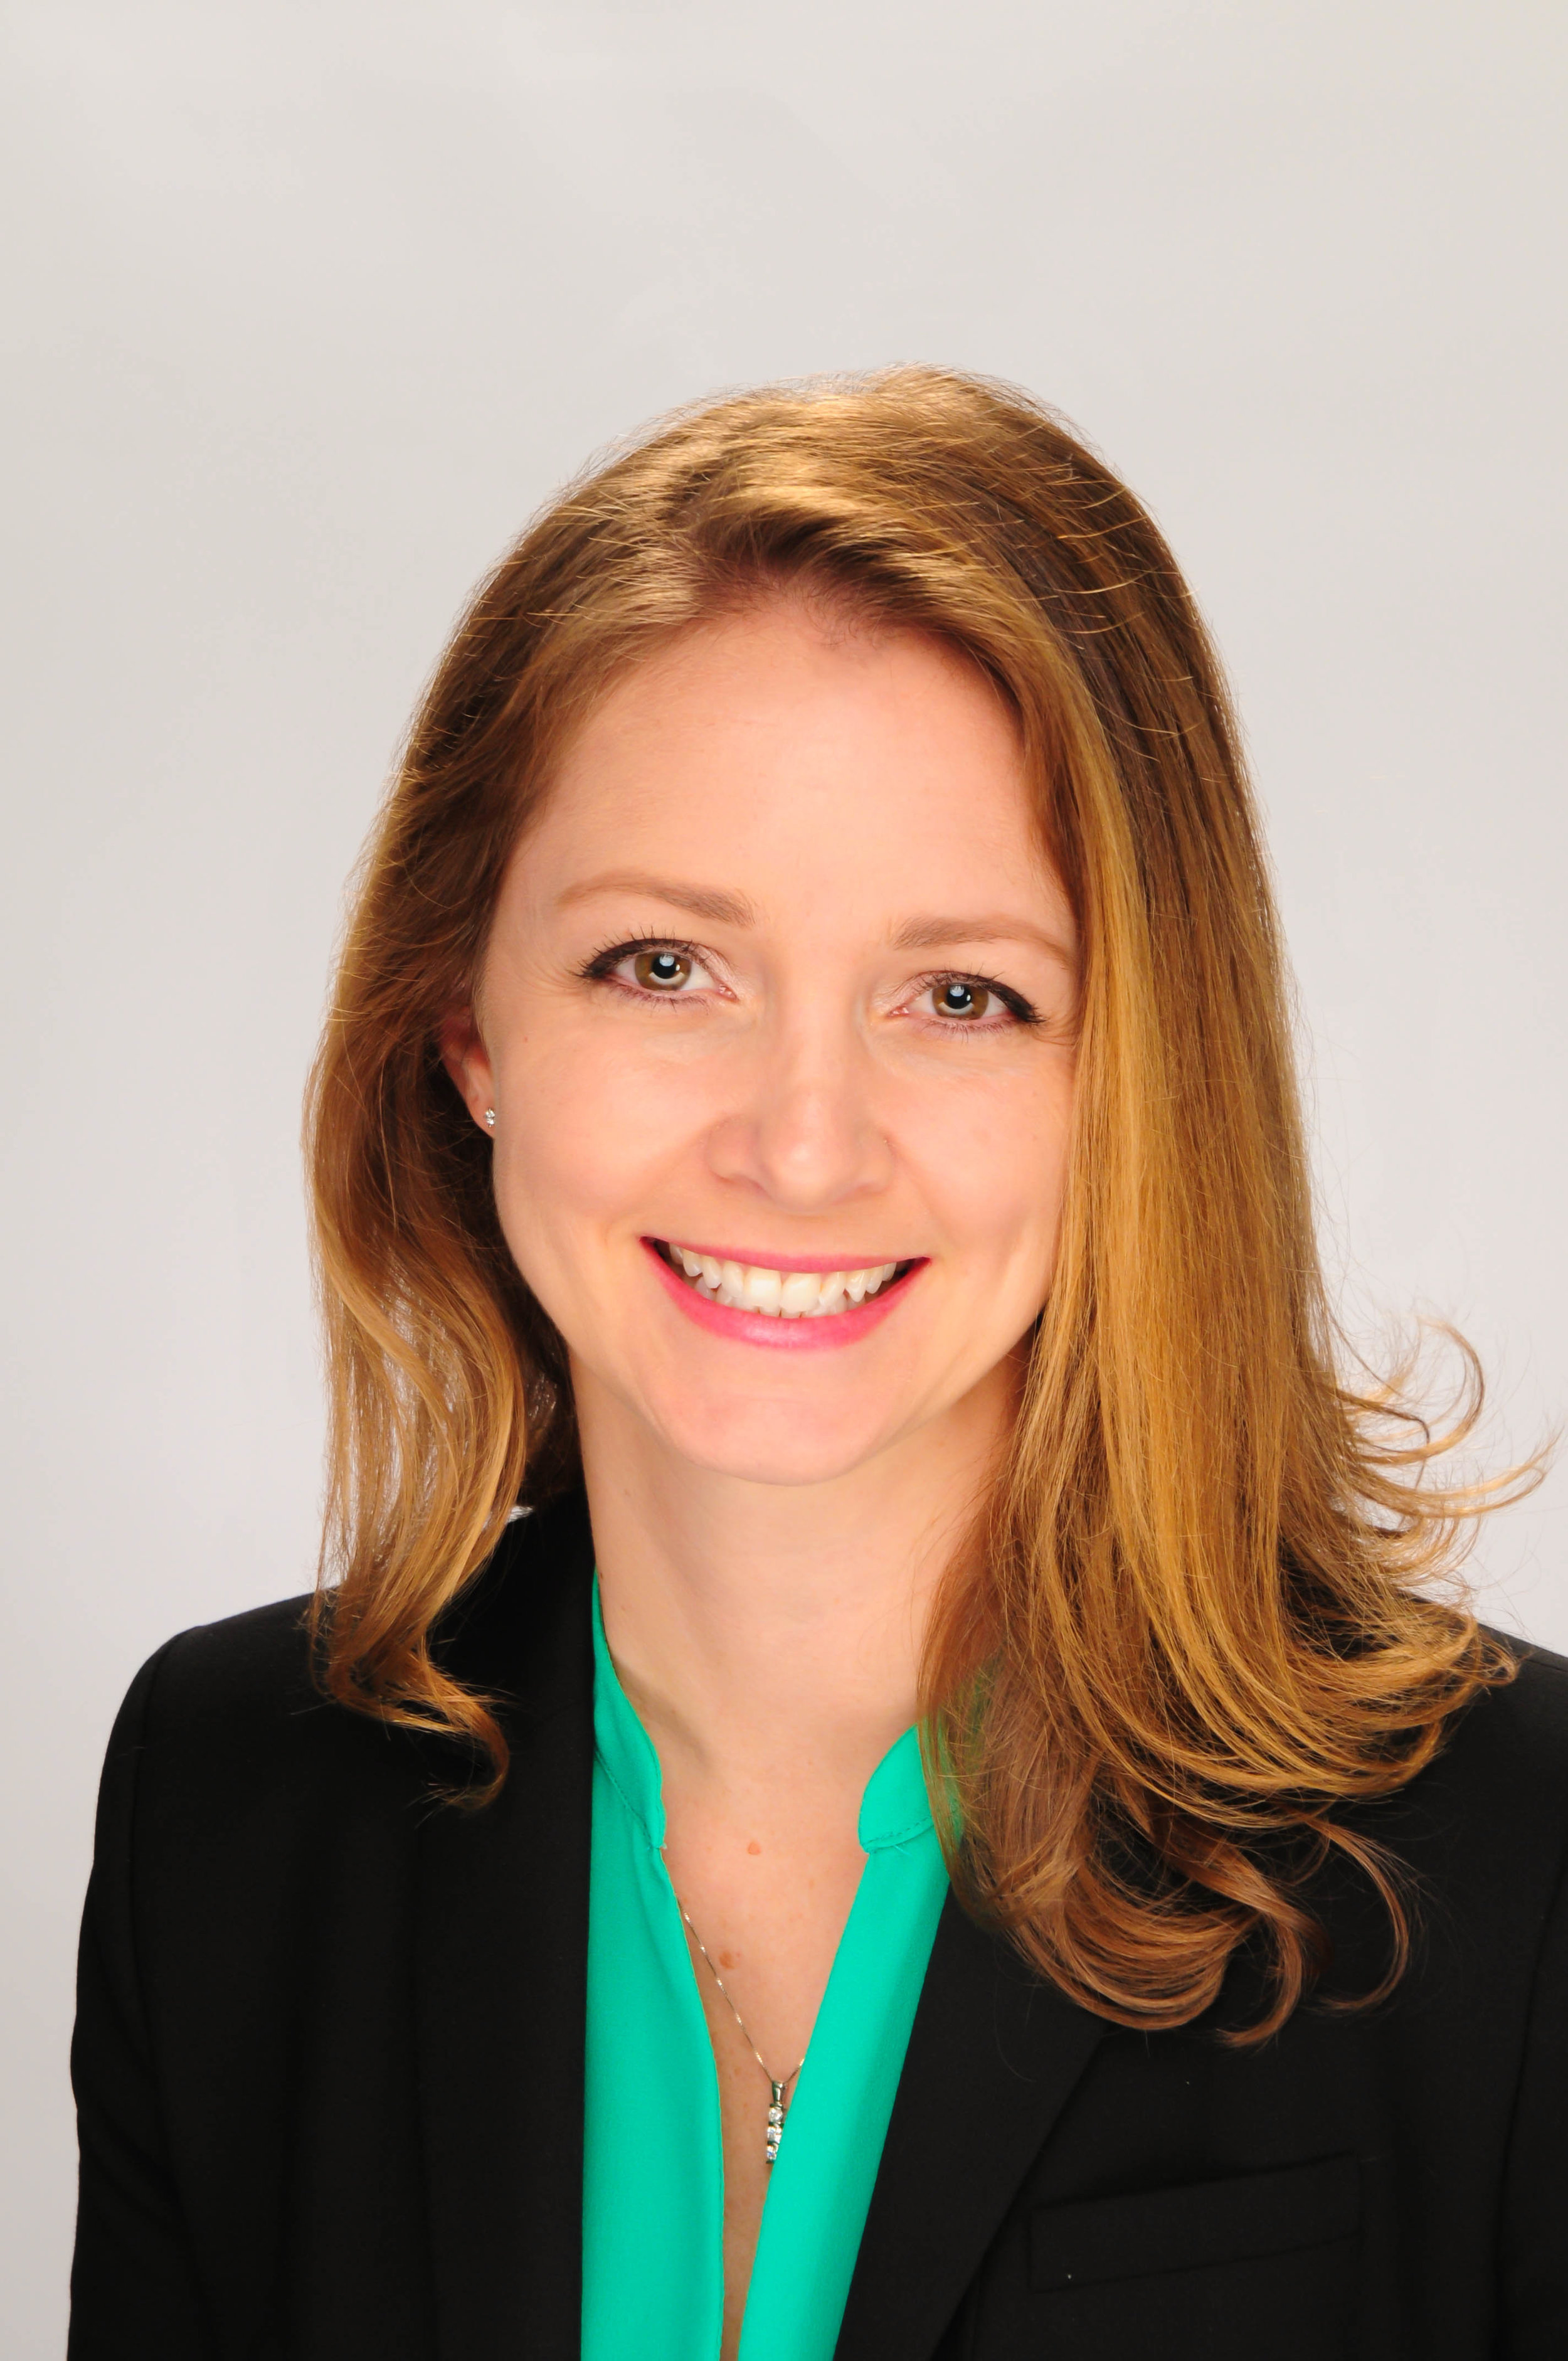 Autumn Moody - Skilled negotiation and mediation for employment, commercial, personal injury and municipal tort cases